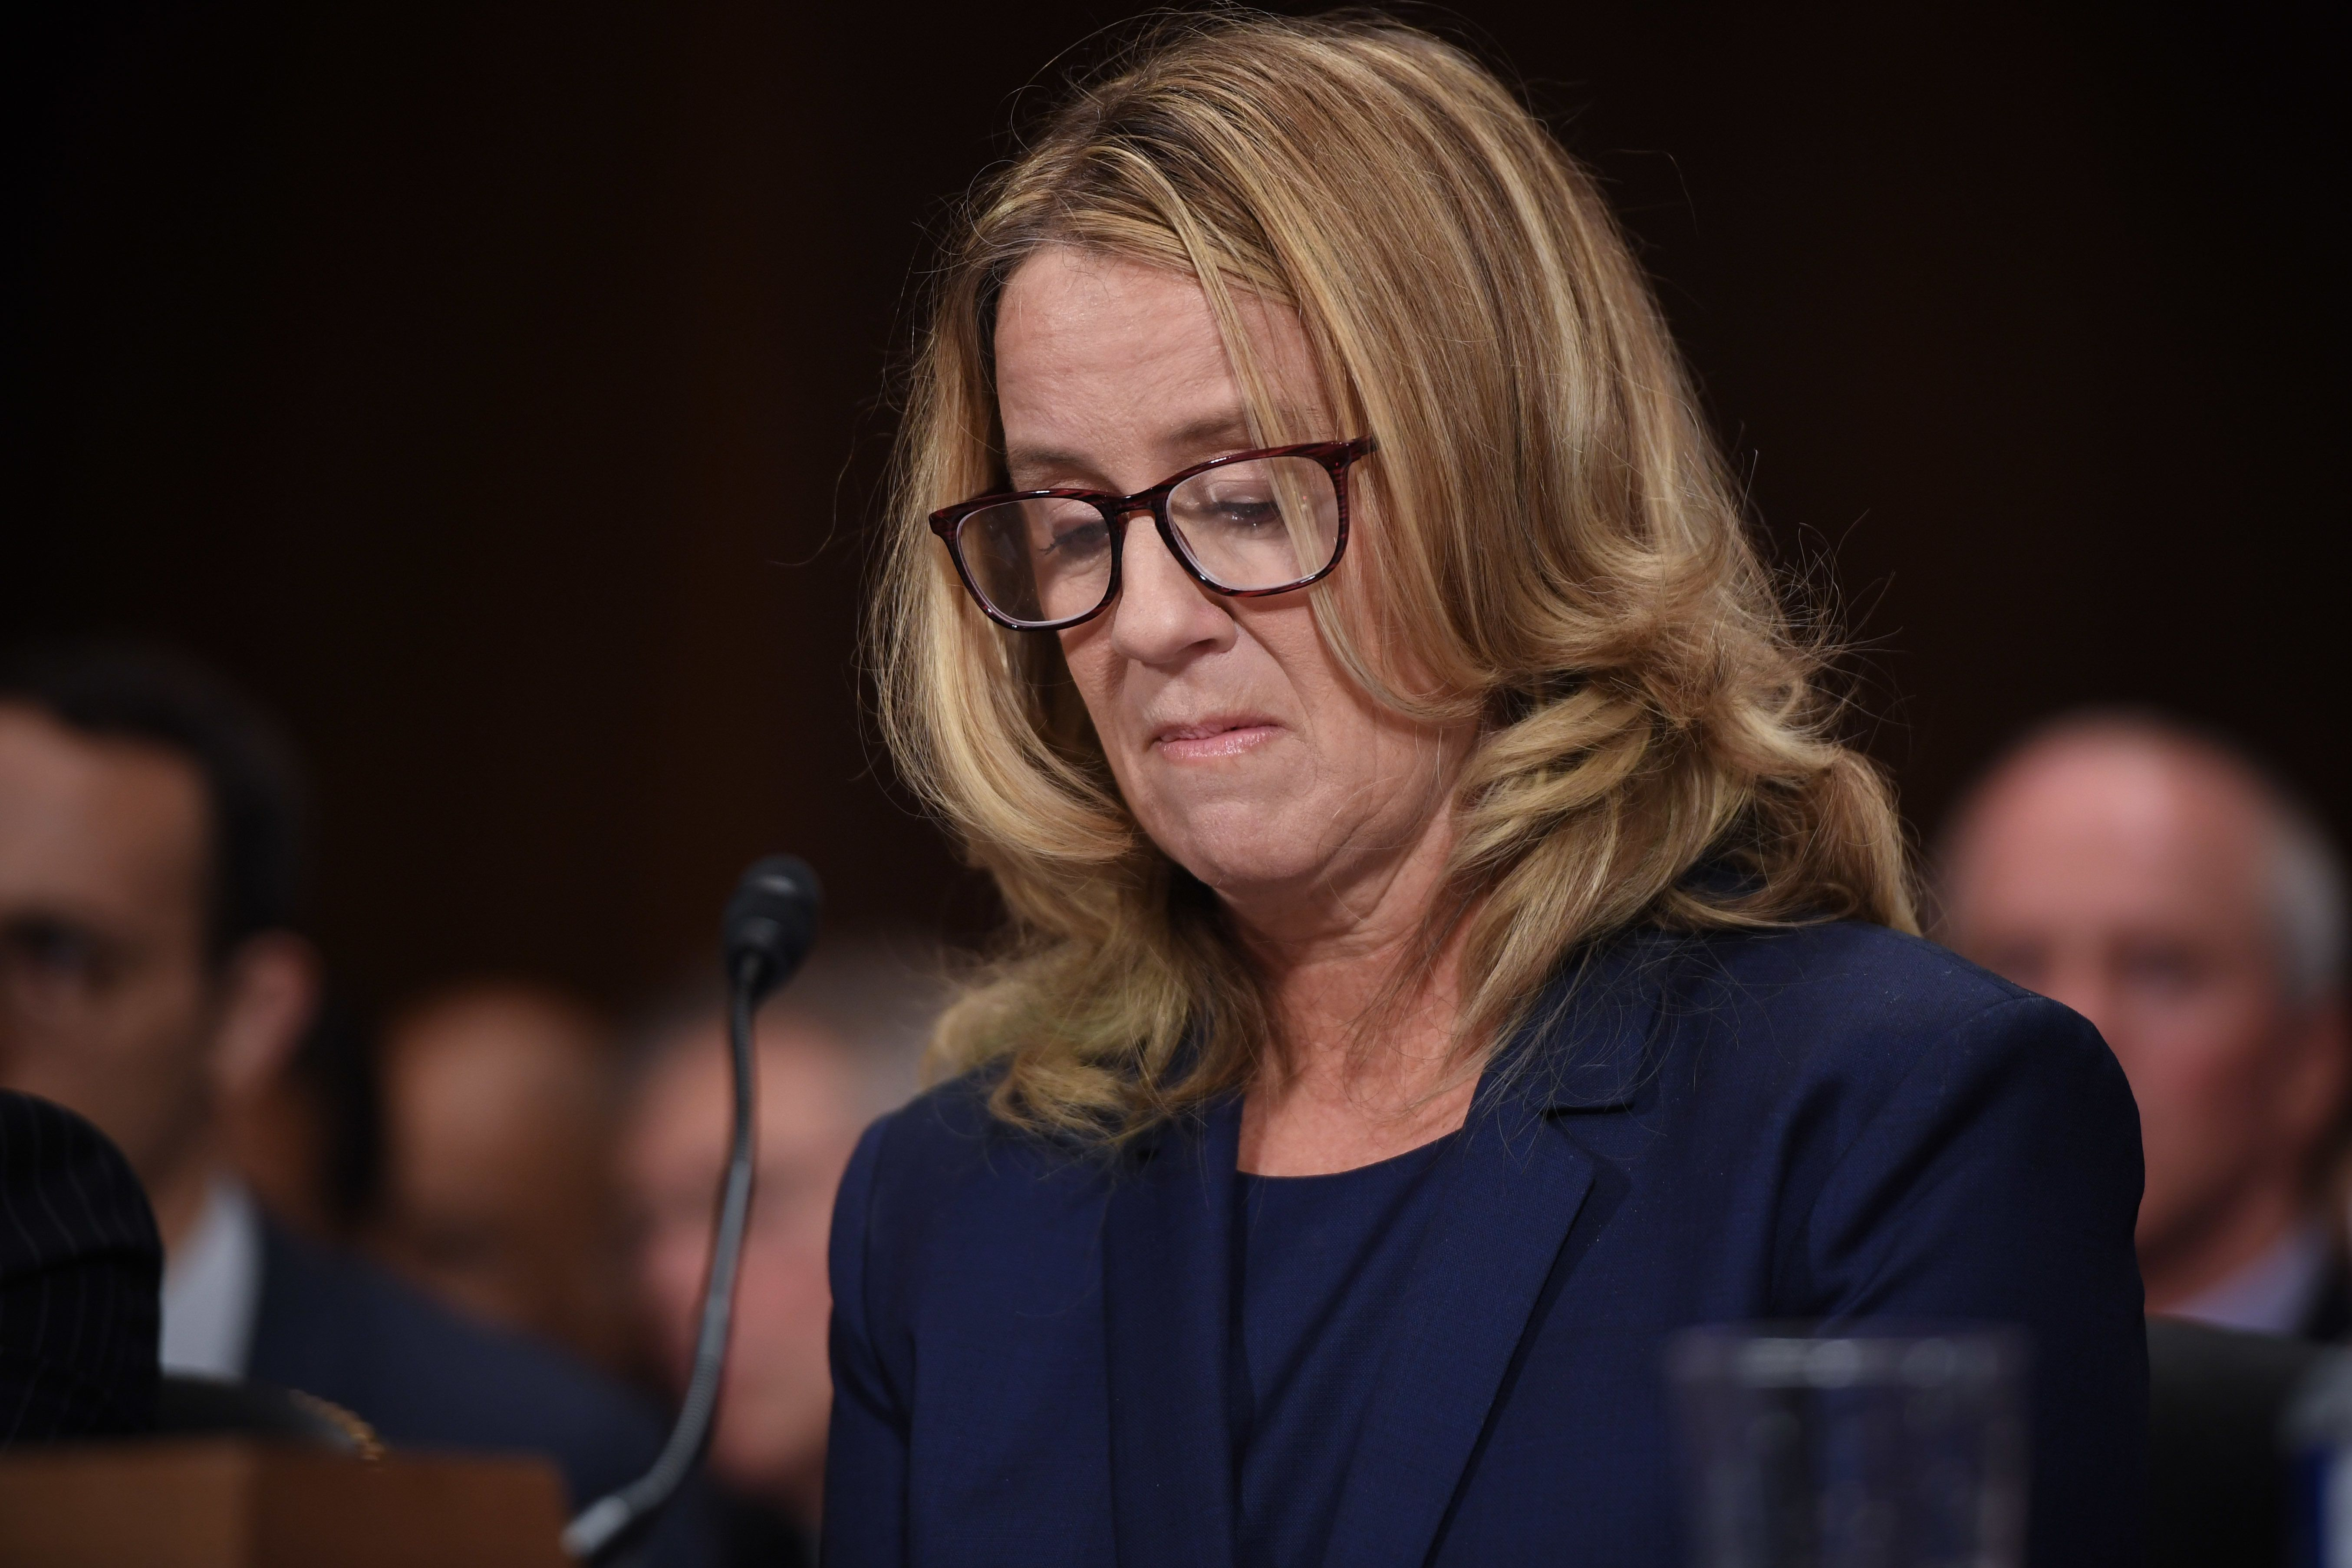 WASHINGTON, DC - SEPTEMBER 27: Christine Blasey Ford, testifies before the US Senate Judiciary Committee in the Dirksen Senate Office Building on Capitol Hill September 27, 2018 in Washington, DC. A professor at Palo Alto University and a research psychologist at the Stanford University School of Medicine, Ford has accused Supreme Court nominee Judge Brett Kavanaugh of sexually assaulting her during a party in 1982 when they were high school students in suburban Maryland.  (Photo by Saul Loeb-Pool/Getty Images)